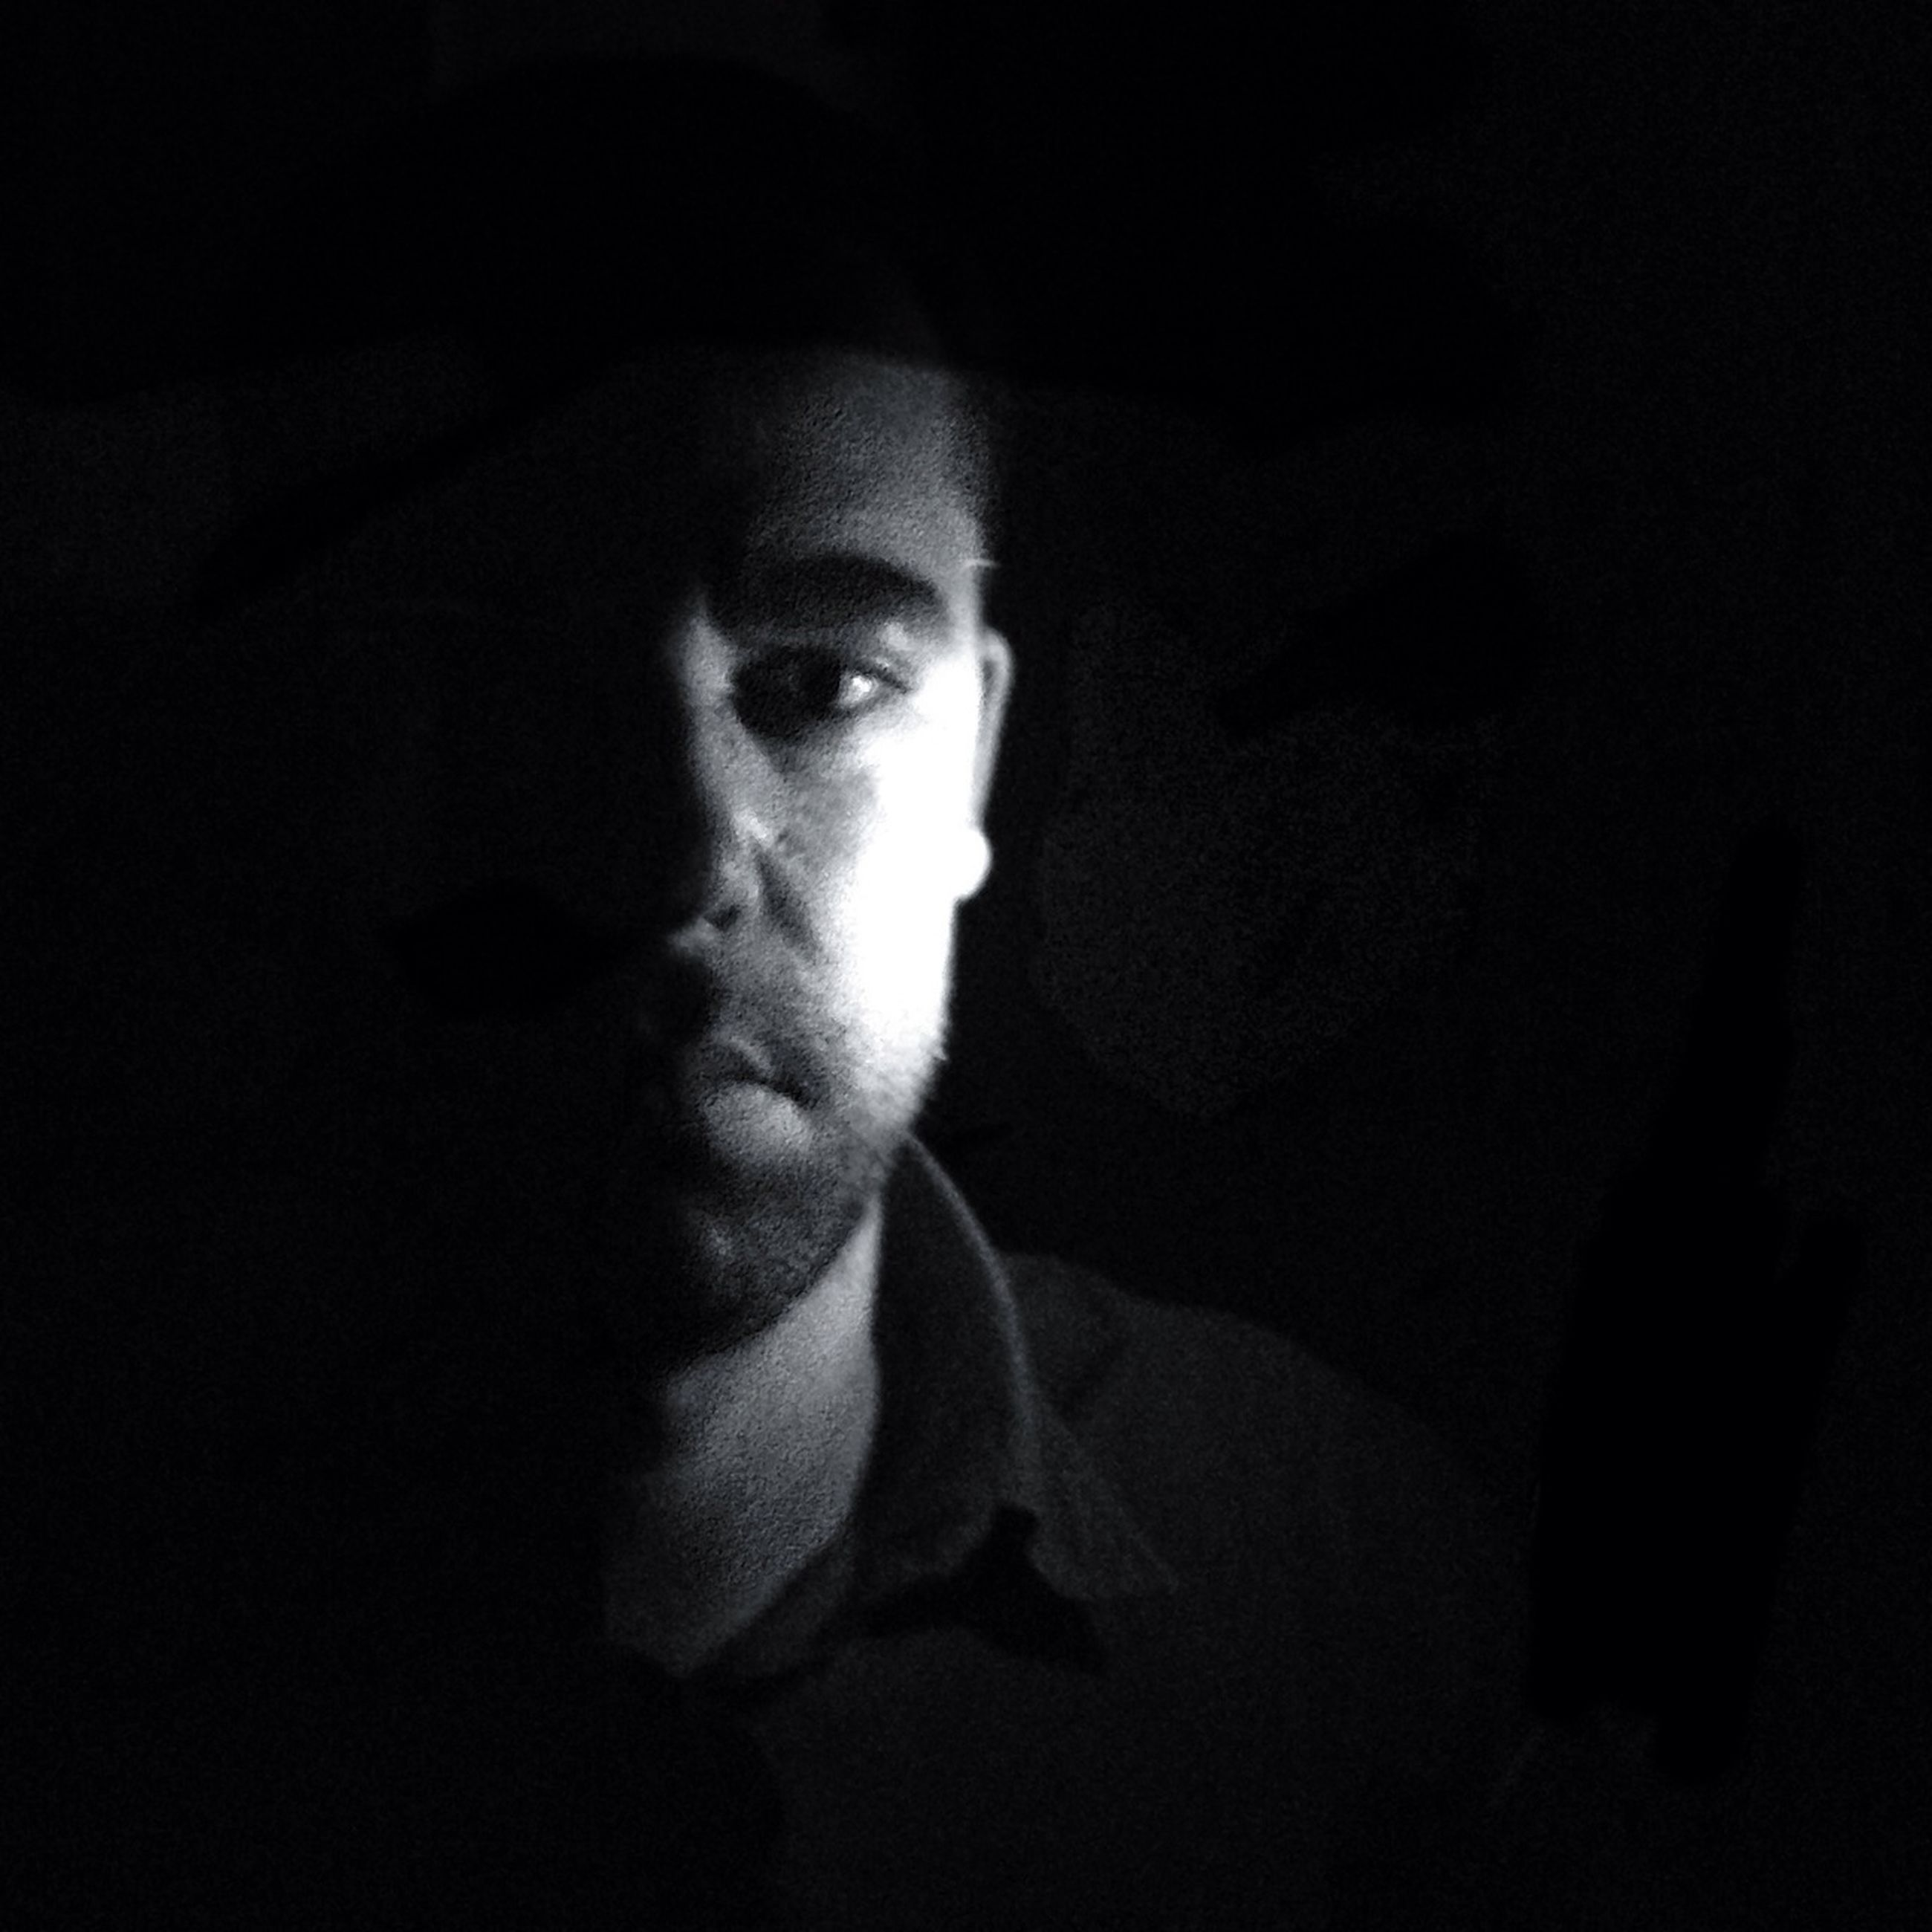 indoors, portrait, looking at camera, headshot, young adult, black background, lifestyles, front view, close-up, studio shot, dark, person, contemplation, young men, human face, leisure activity, serious